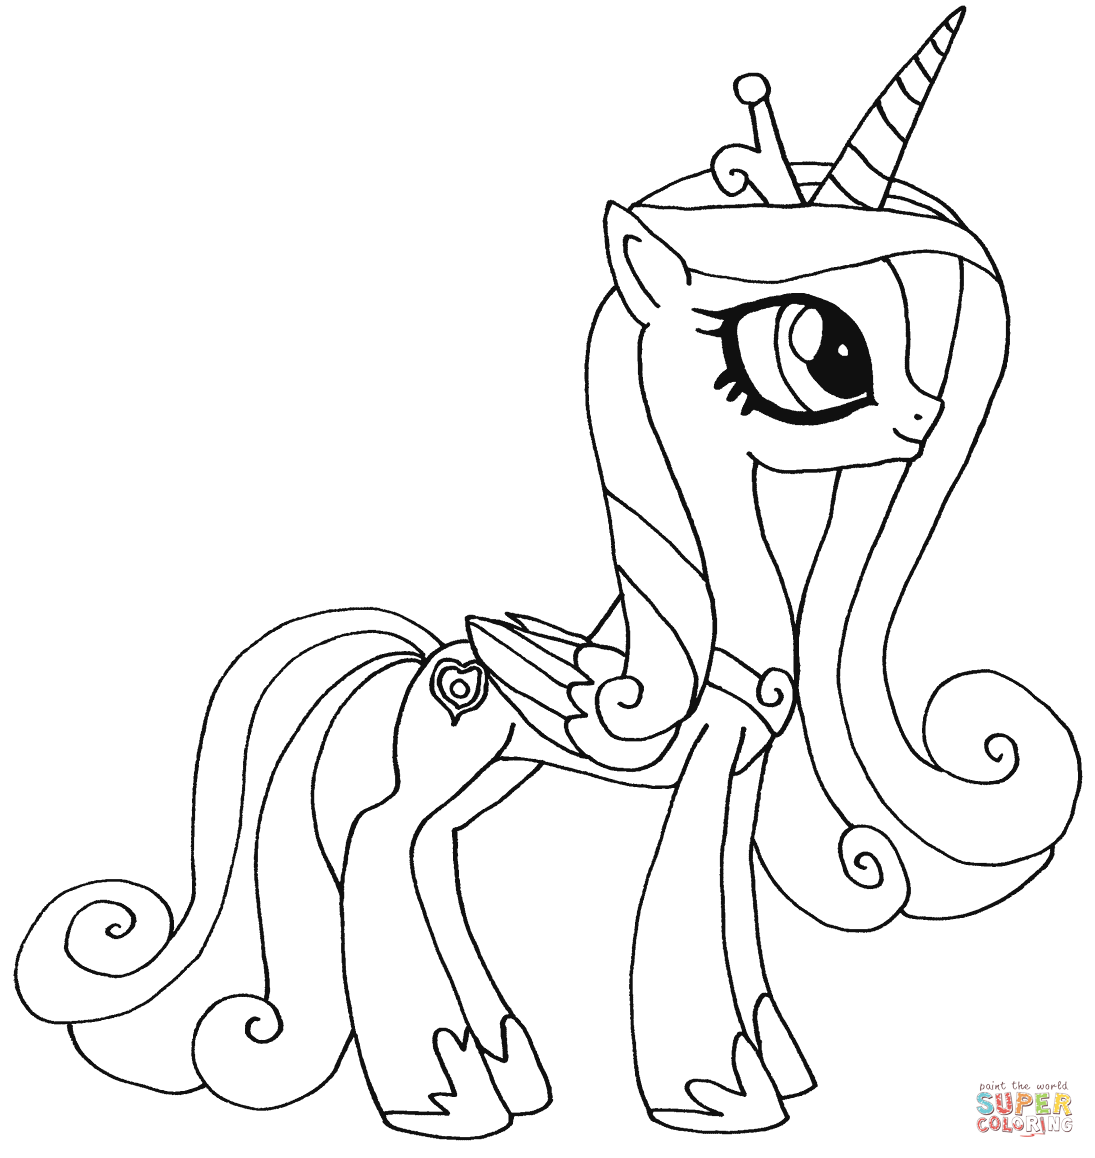 Princess Candance From My Little Pony Coloring Page My Little